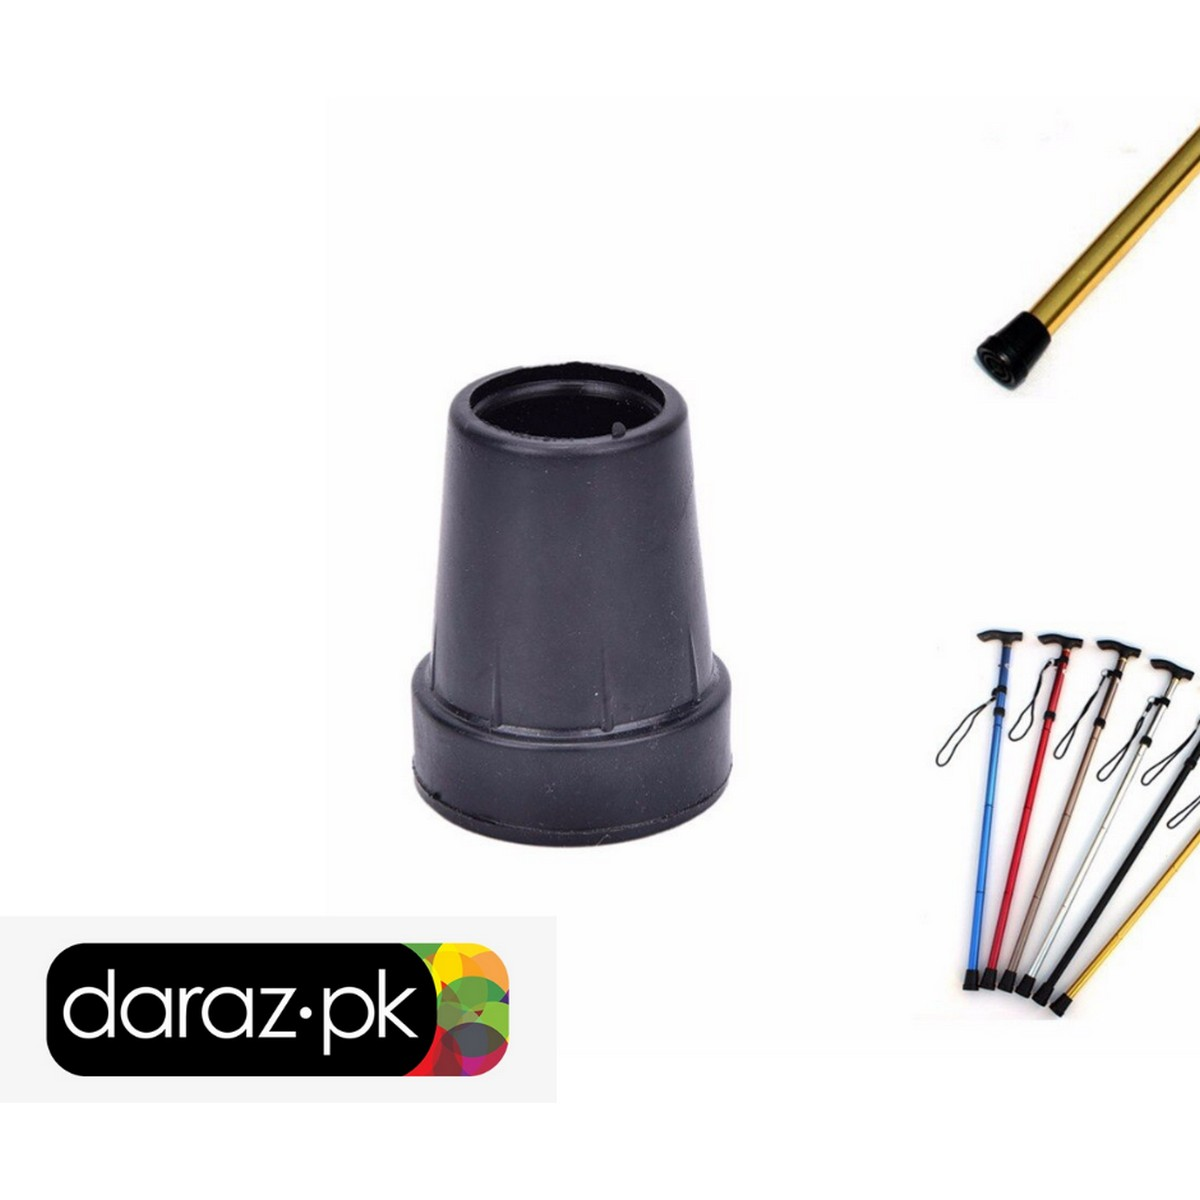 Durable Replacement Walking Stick Rubber/Cane Tips, Extra Stability, Non-Slip Grip Pack of 2